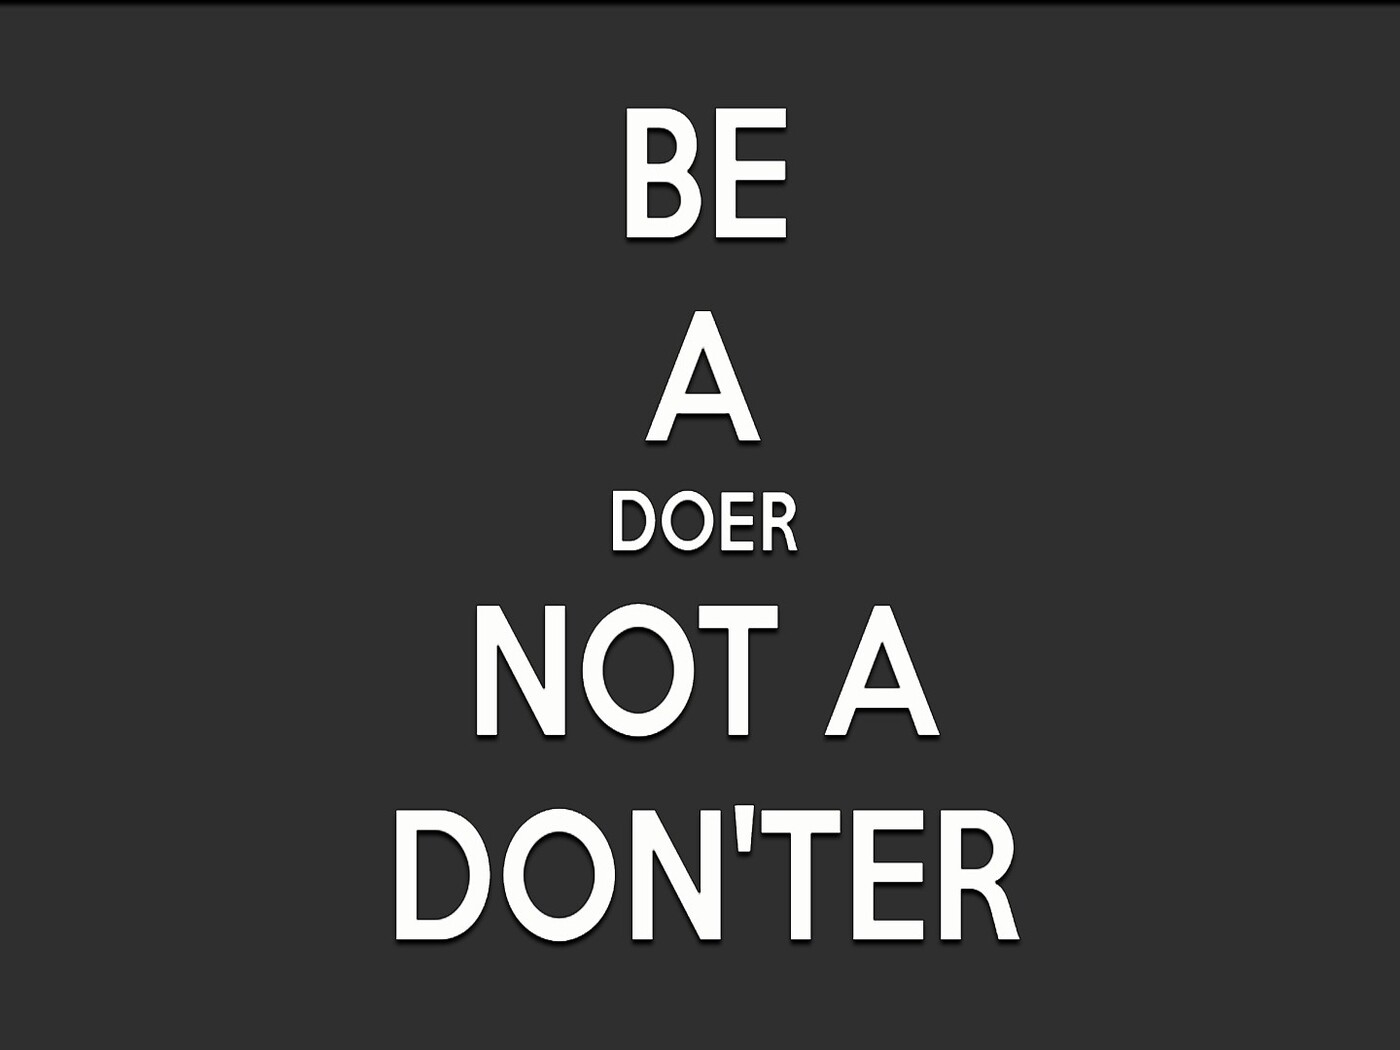 be-a-doer-not-a-donter.jpg